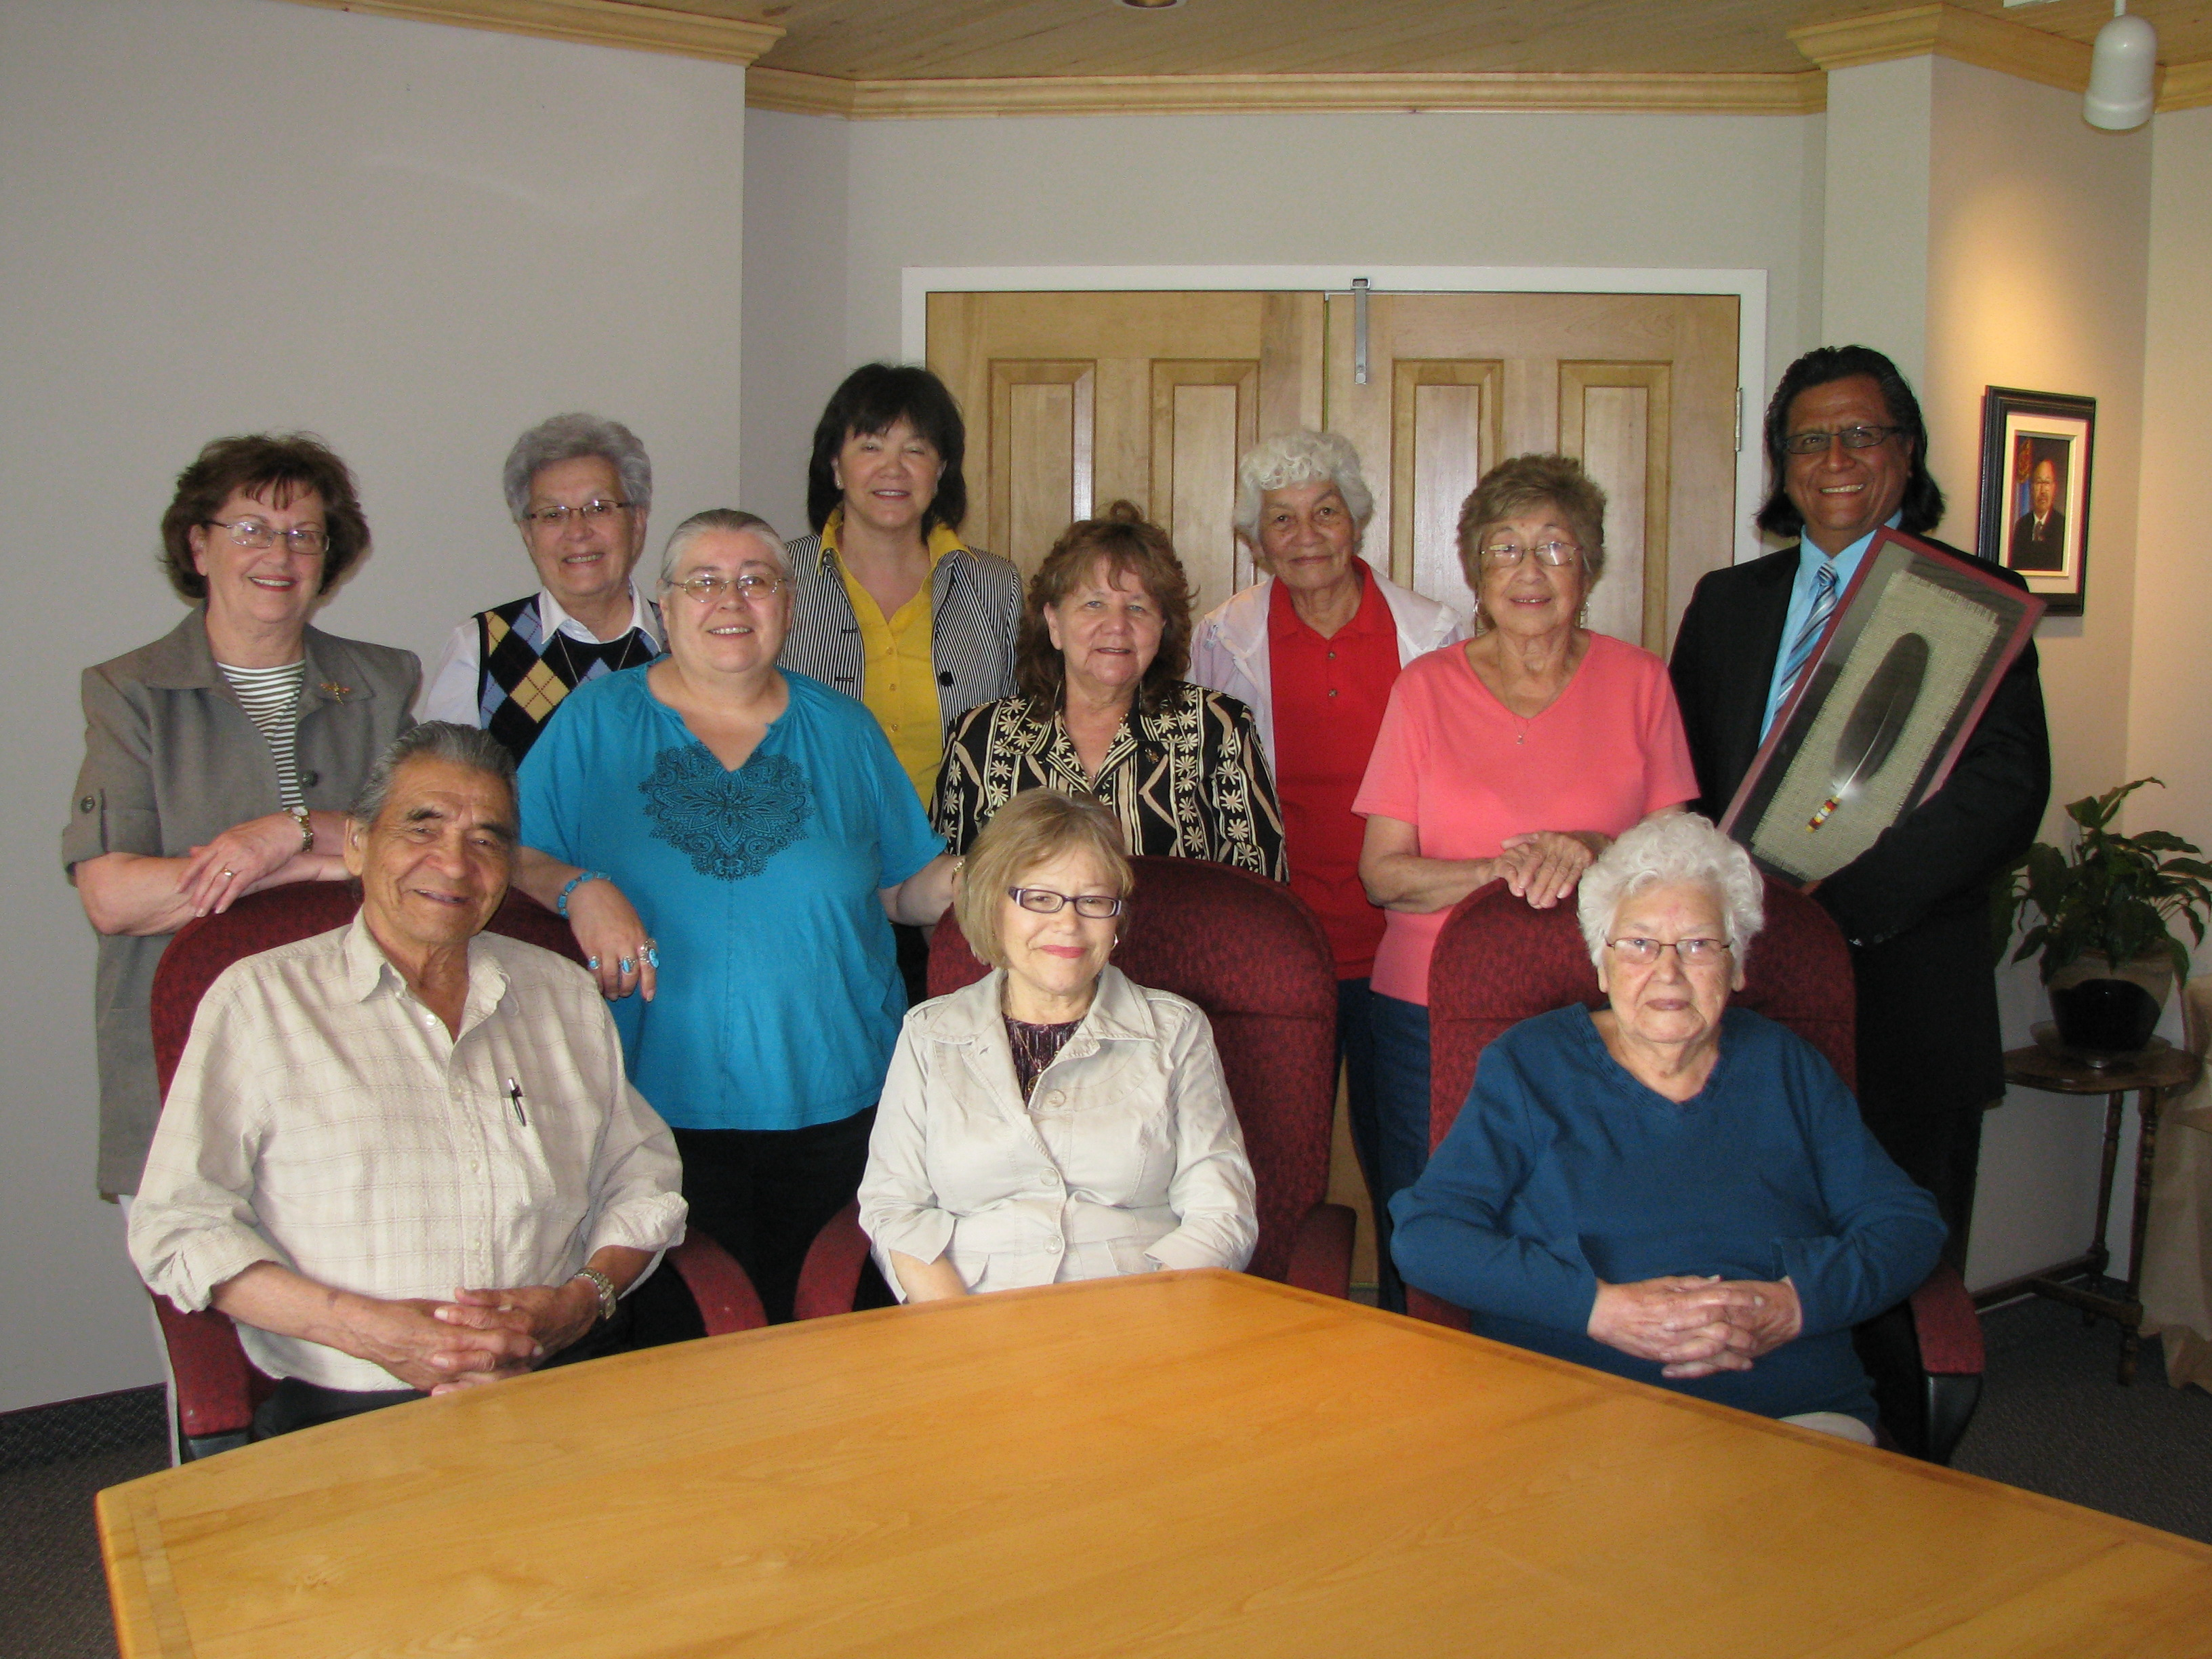 Jose Zarate (far right, standing) received an eagle feather from the Confederation of Mainland Mi'kmaq.